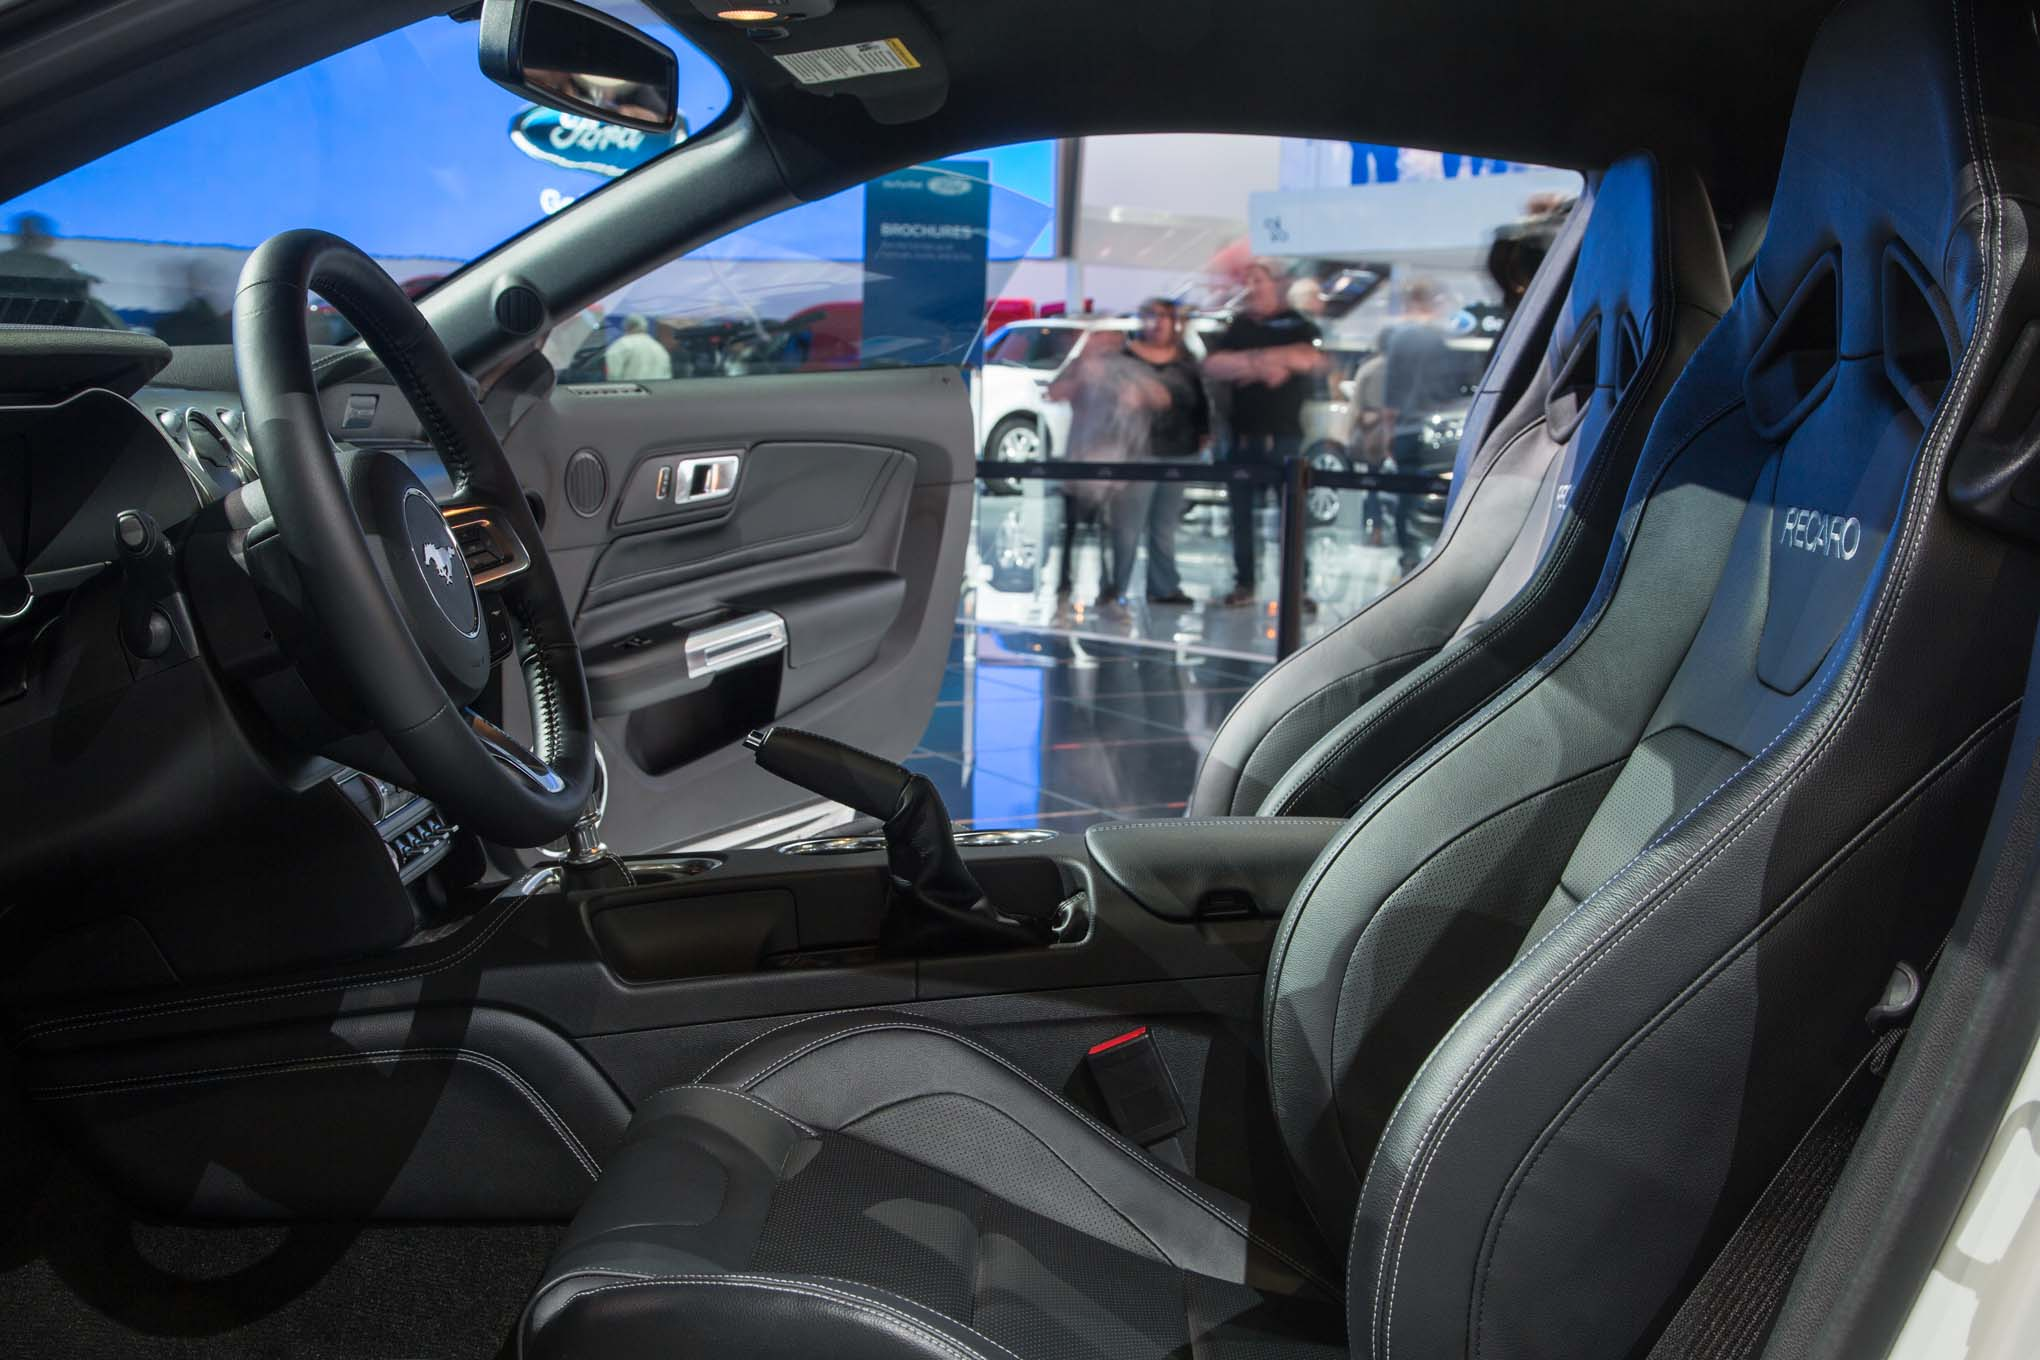 2018-Ford-Mustang-GT-interior-seats-02